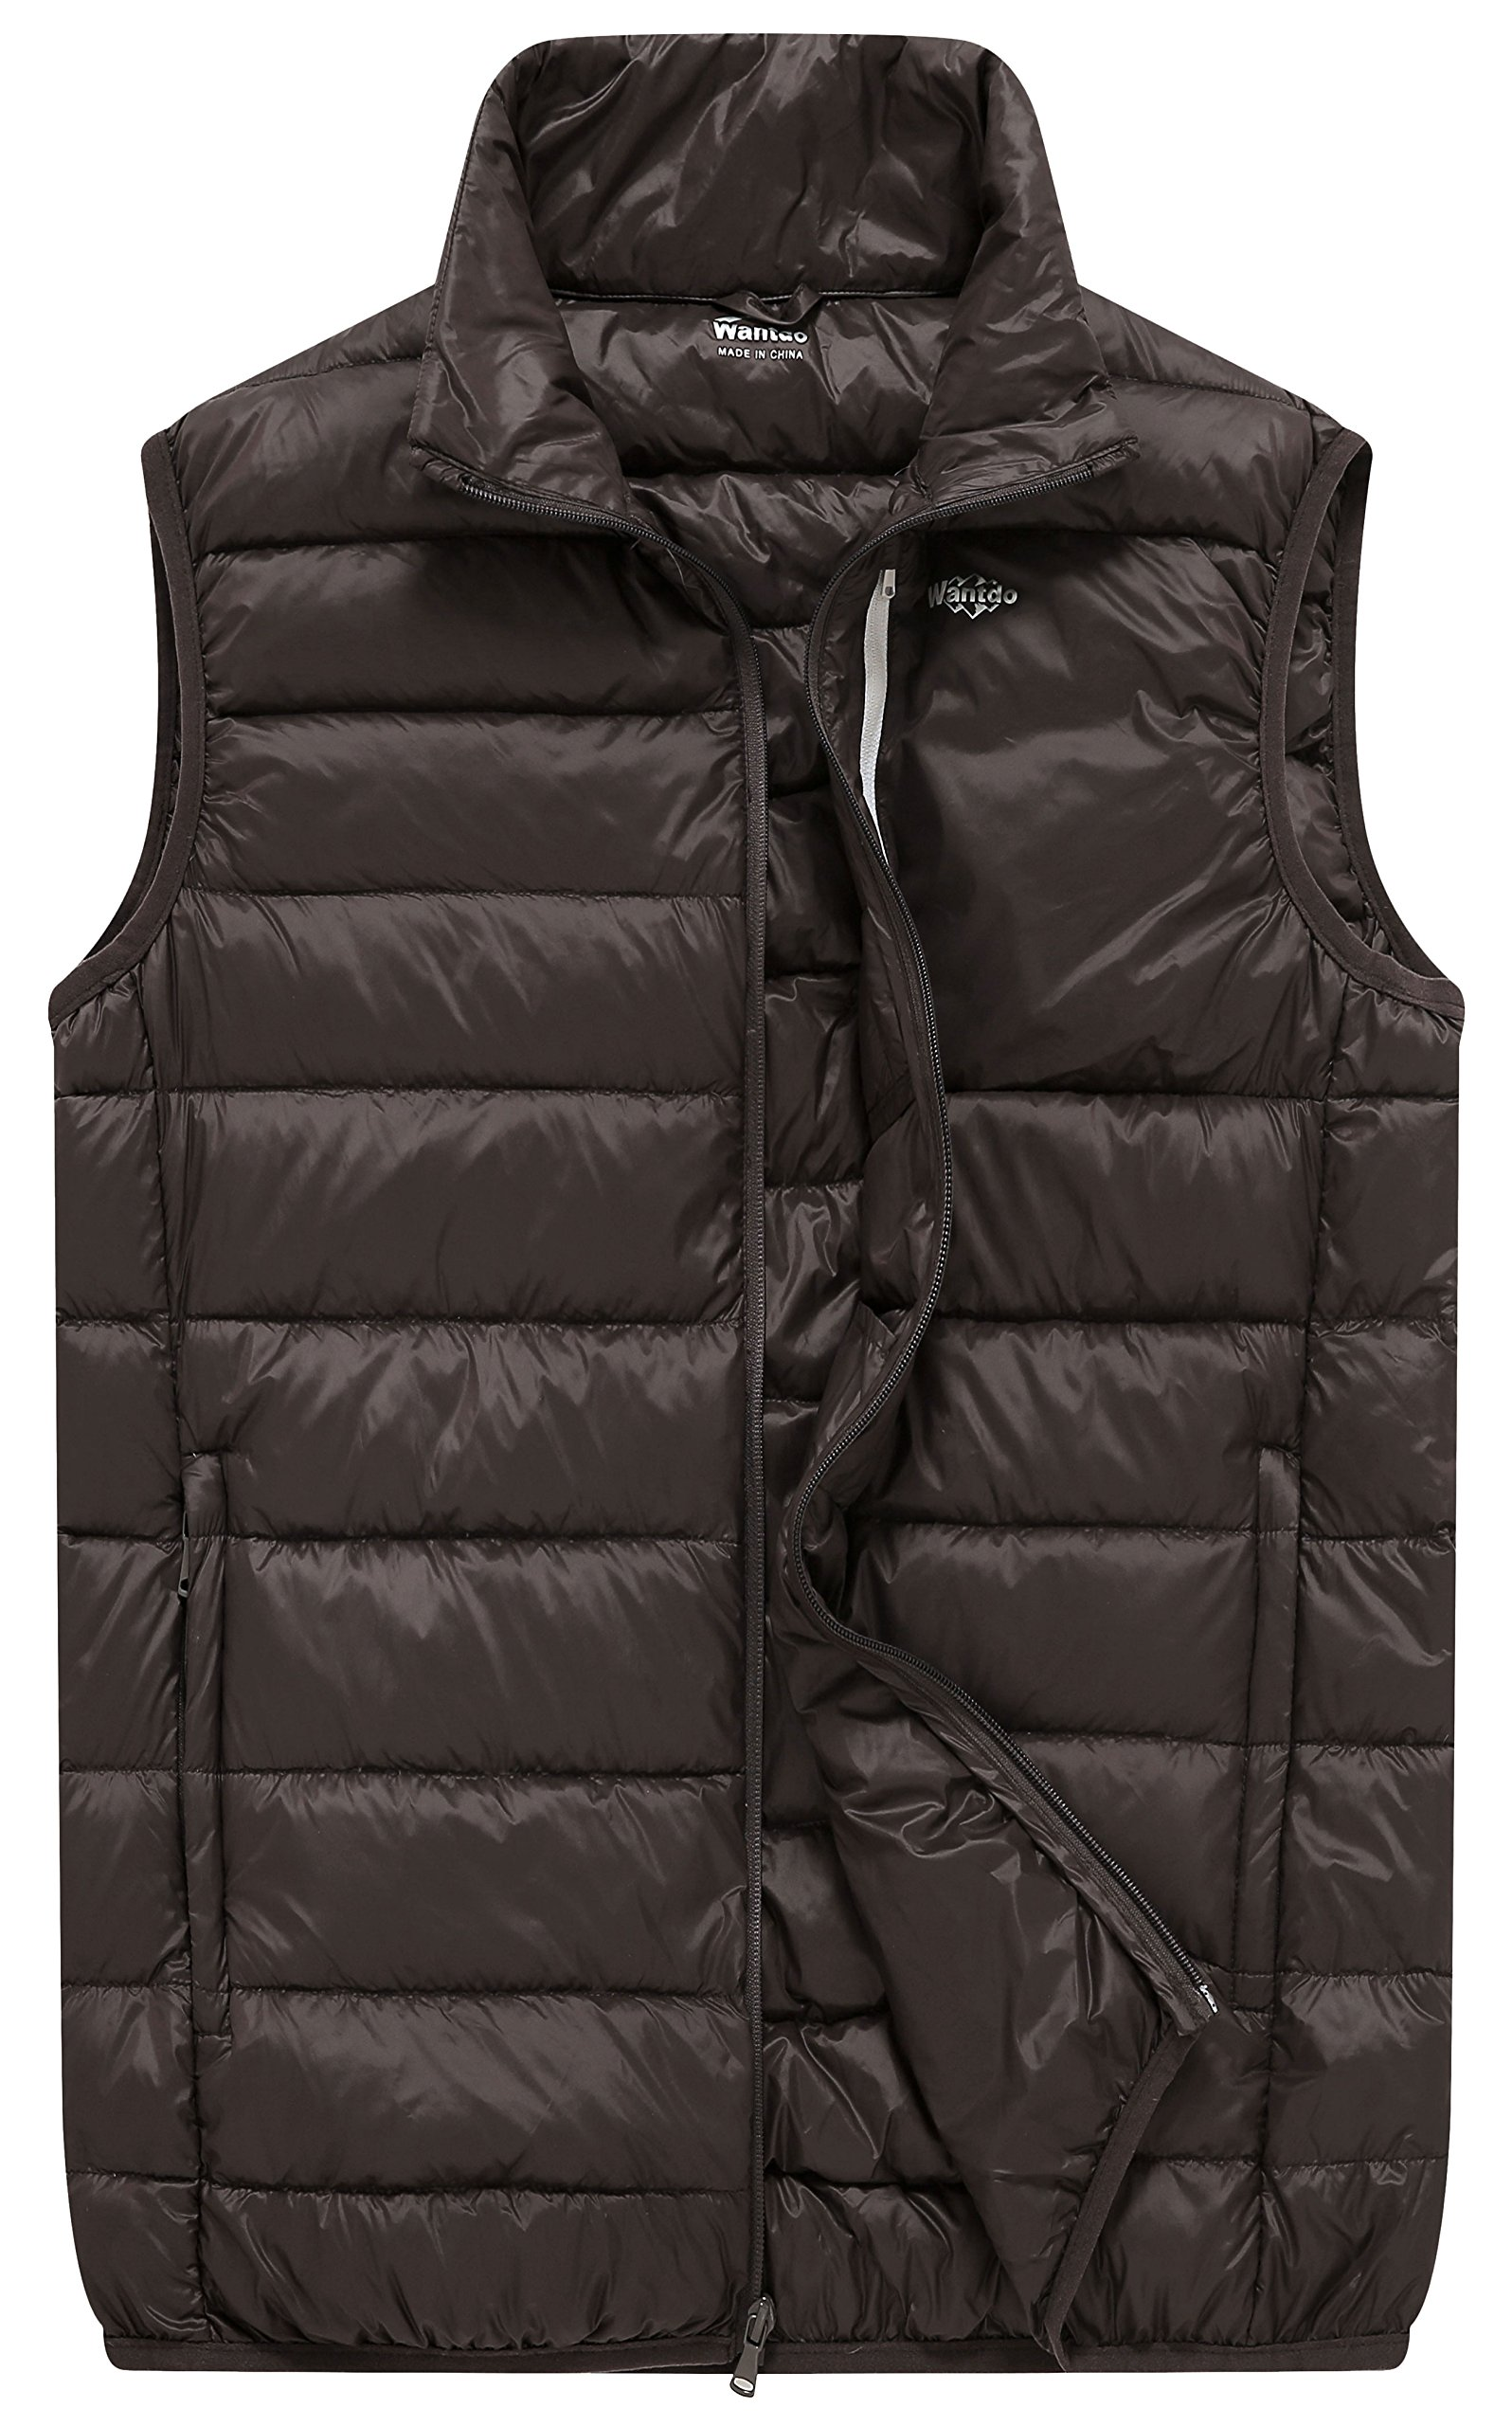 Wantdo Men's Packable Travel Ultra Light Padded Down Vest, Brown, S